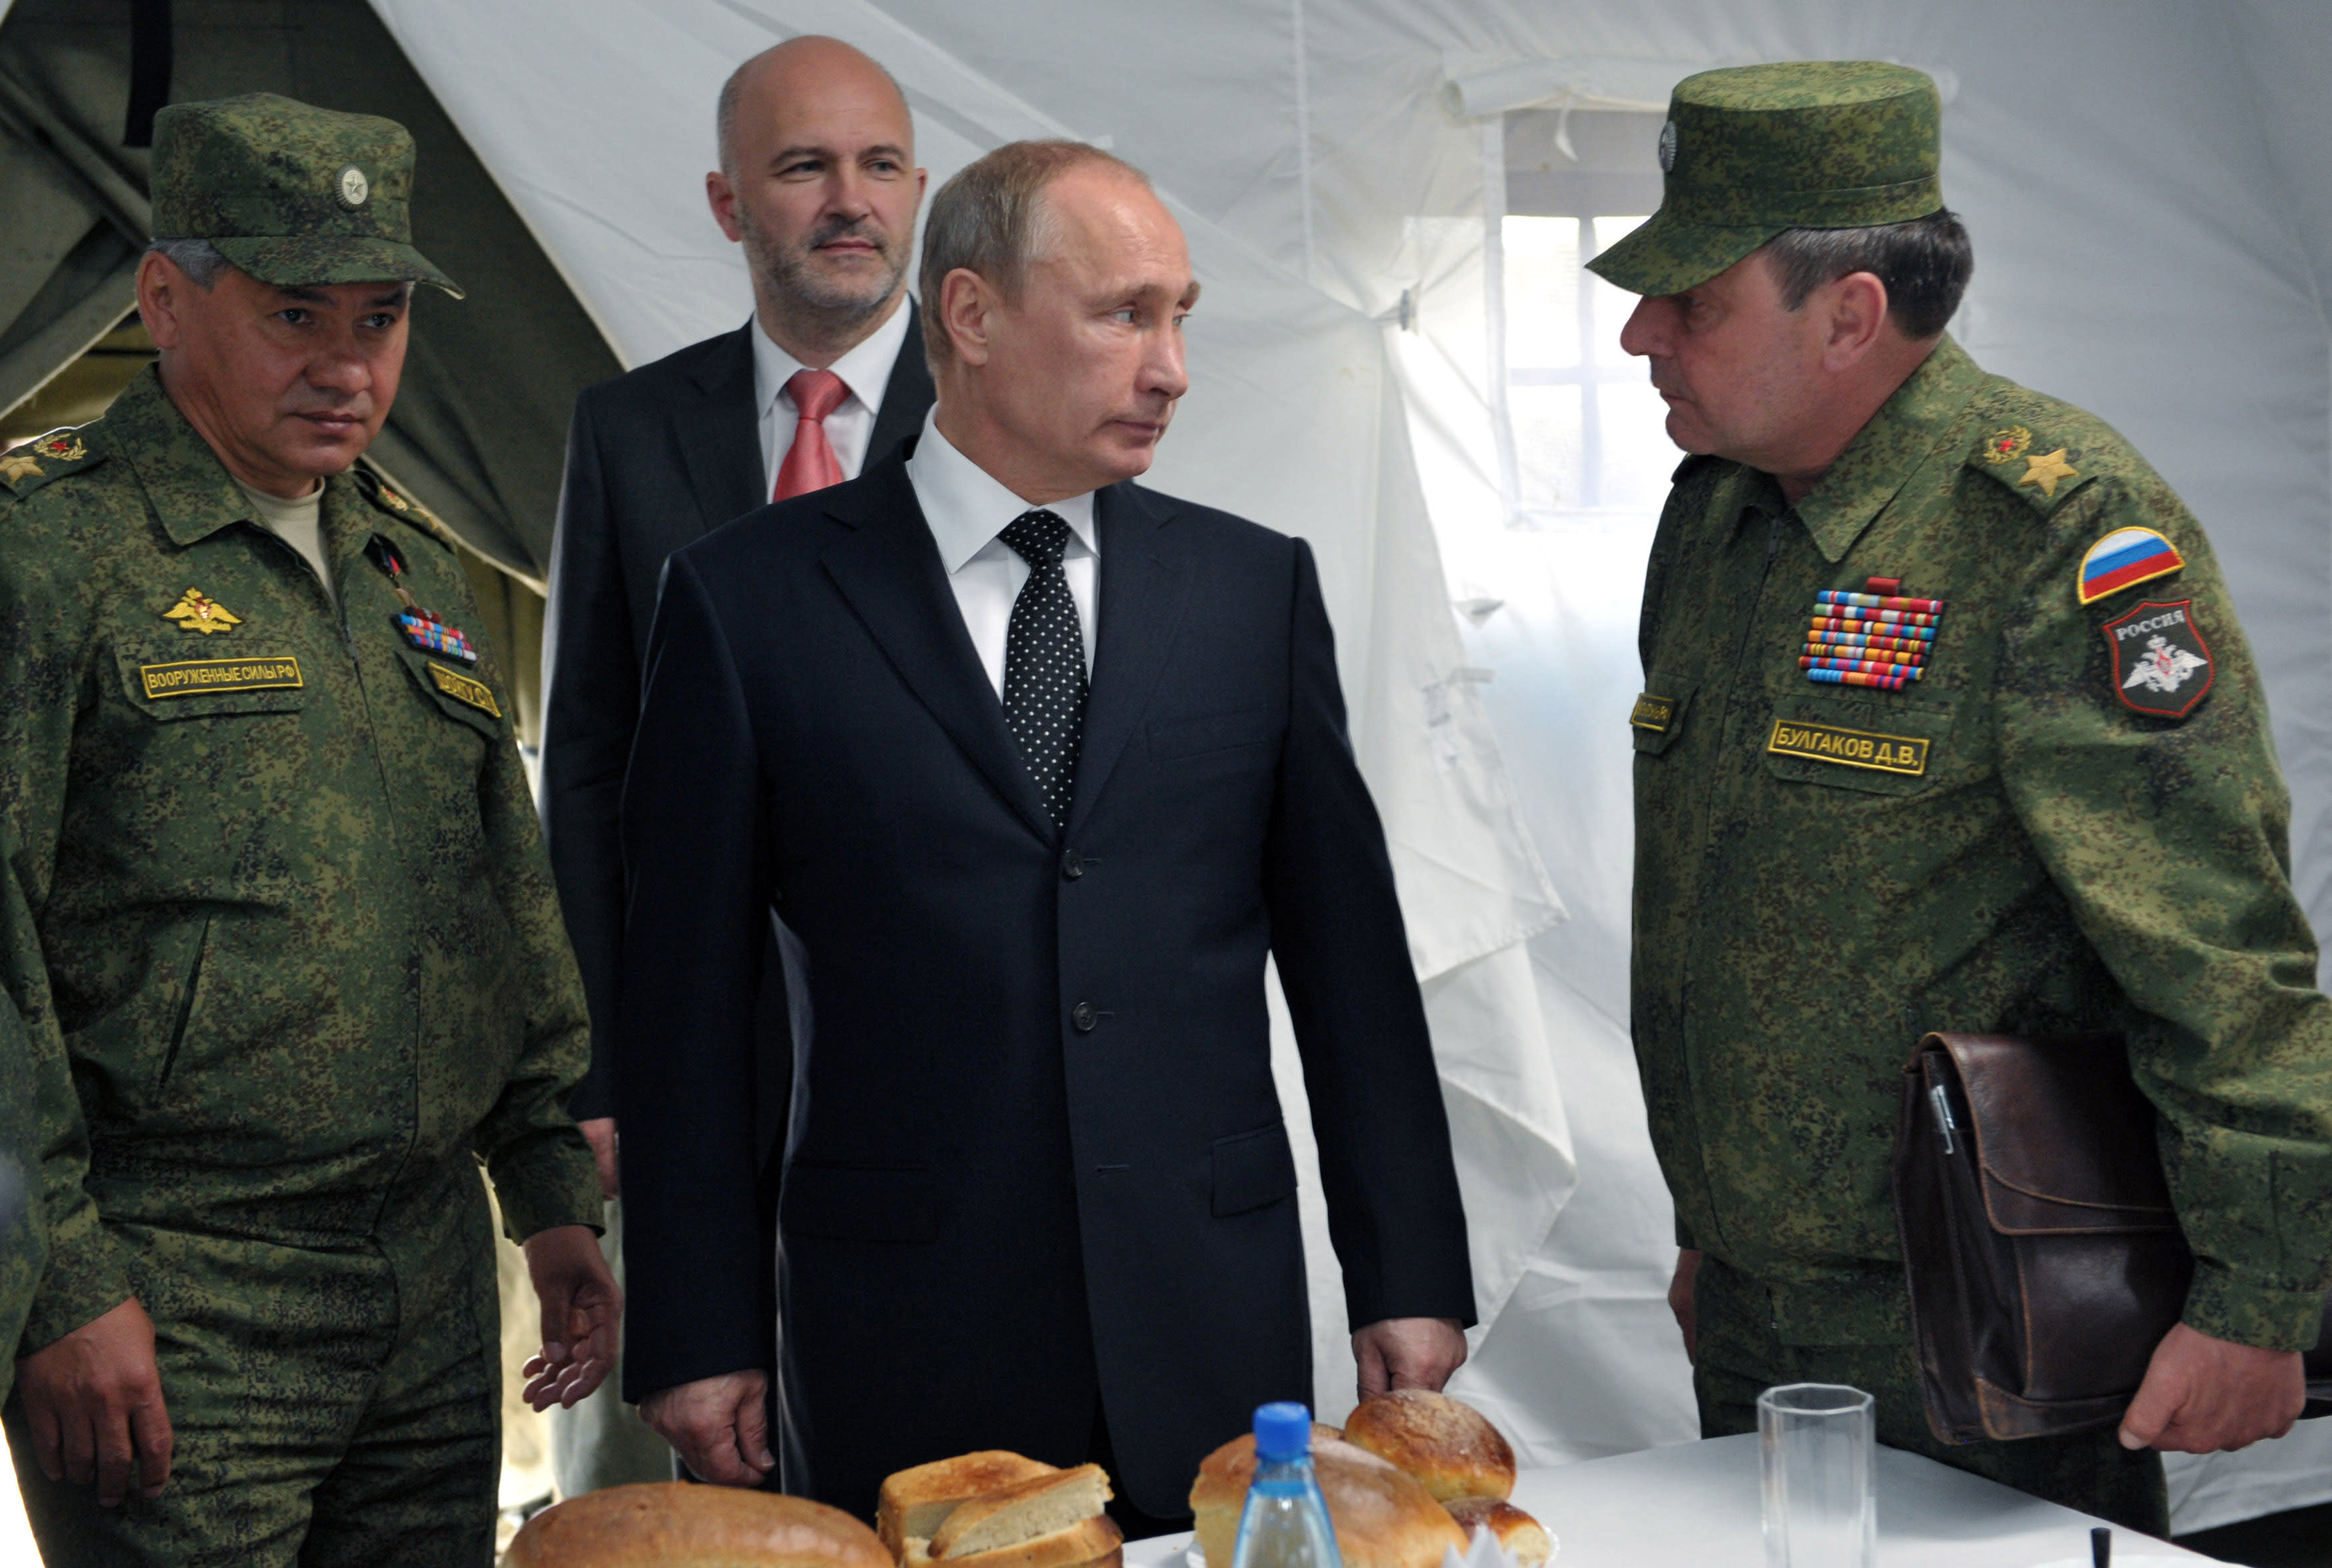 Russian President Vladimir Putin, center, listens to Deputy Defense Minister Dmitry Bulgakov, right, as Defense Minister Sergei Shoigu, left, and Gov. of Baikal region Konstantin Ilkovsky, background, observe military exercises near the Baikal Lake on Wednesday, July 17, 2013. Russia has launched its biggest military maneuvers since Soviet times, involving 160,000 troops and about 5,000 tanks across Siberia and the far eastern region. (AP Photo/RIA Novosti, Alexei Nikolsky, Presidential Press Service, Pool)